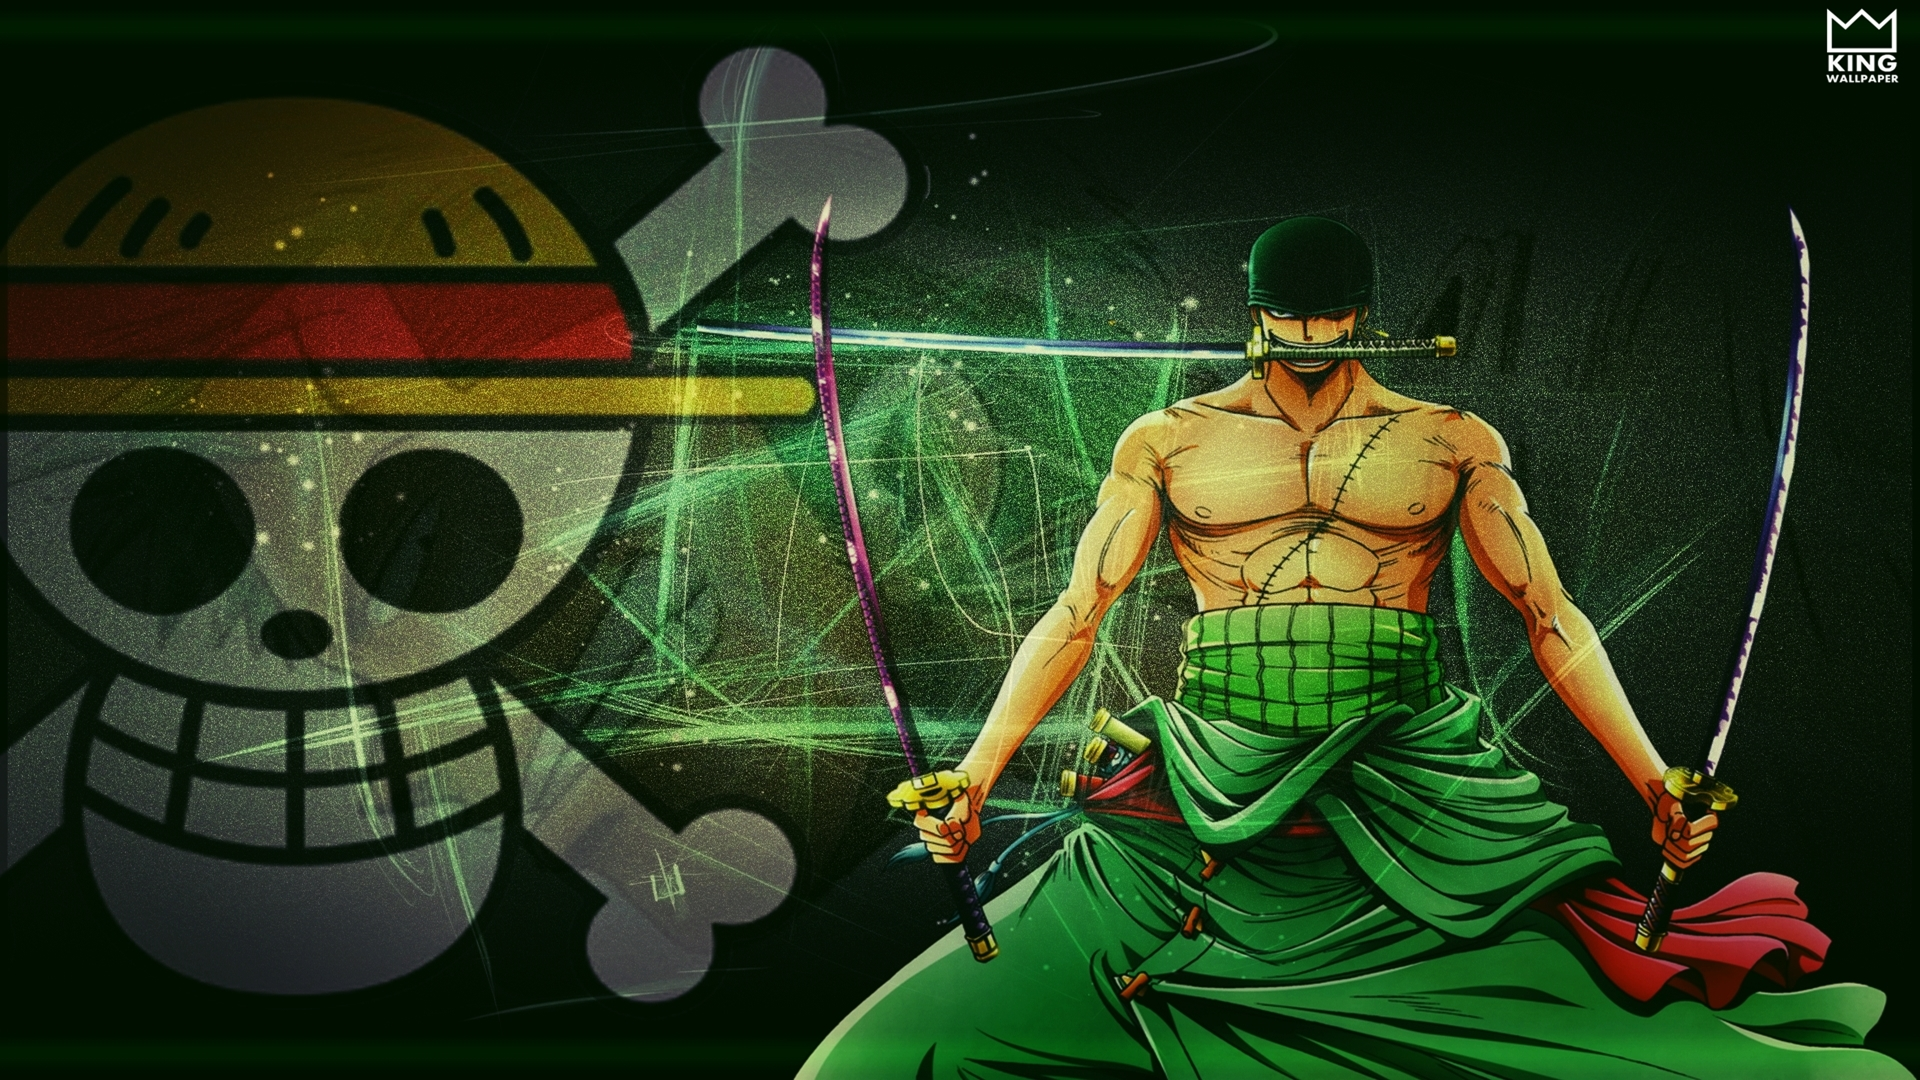 860839 Title Zoro Roronoa Anime One Piece Roronoa Zorro One Piece Hd 1920x1080 Download Hd Wallpaper Wallpapertip